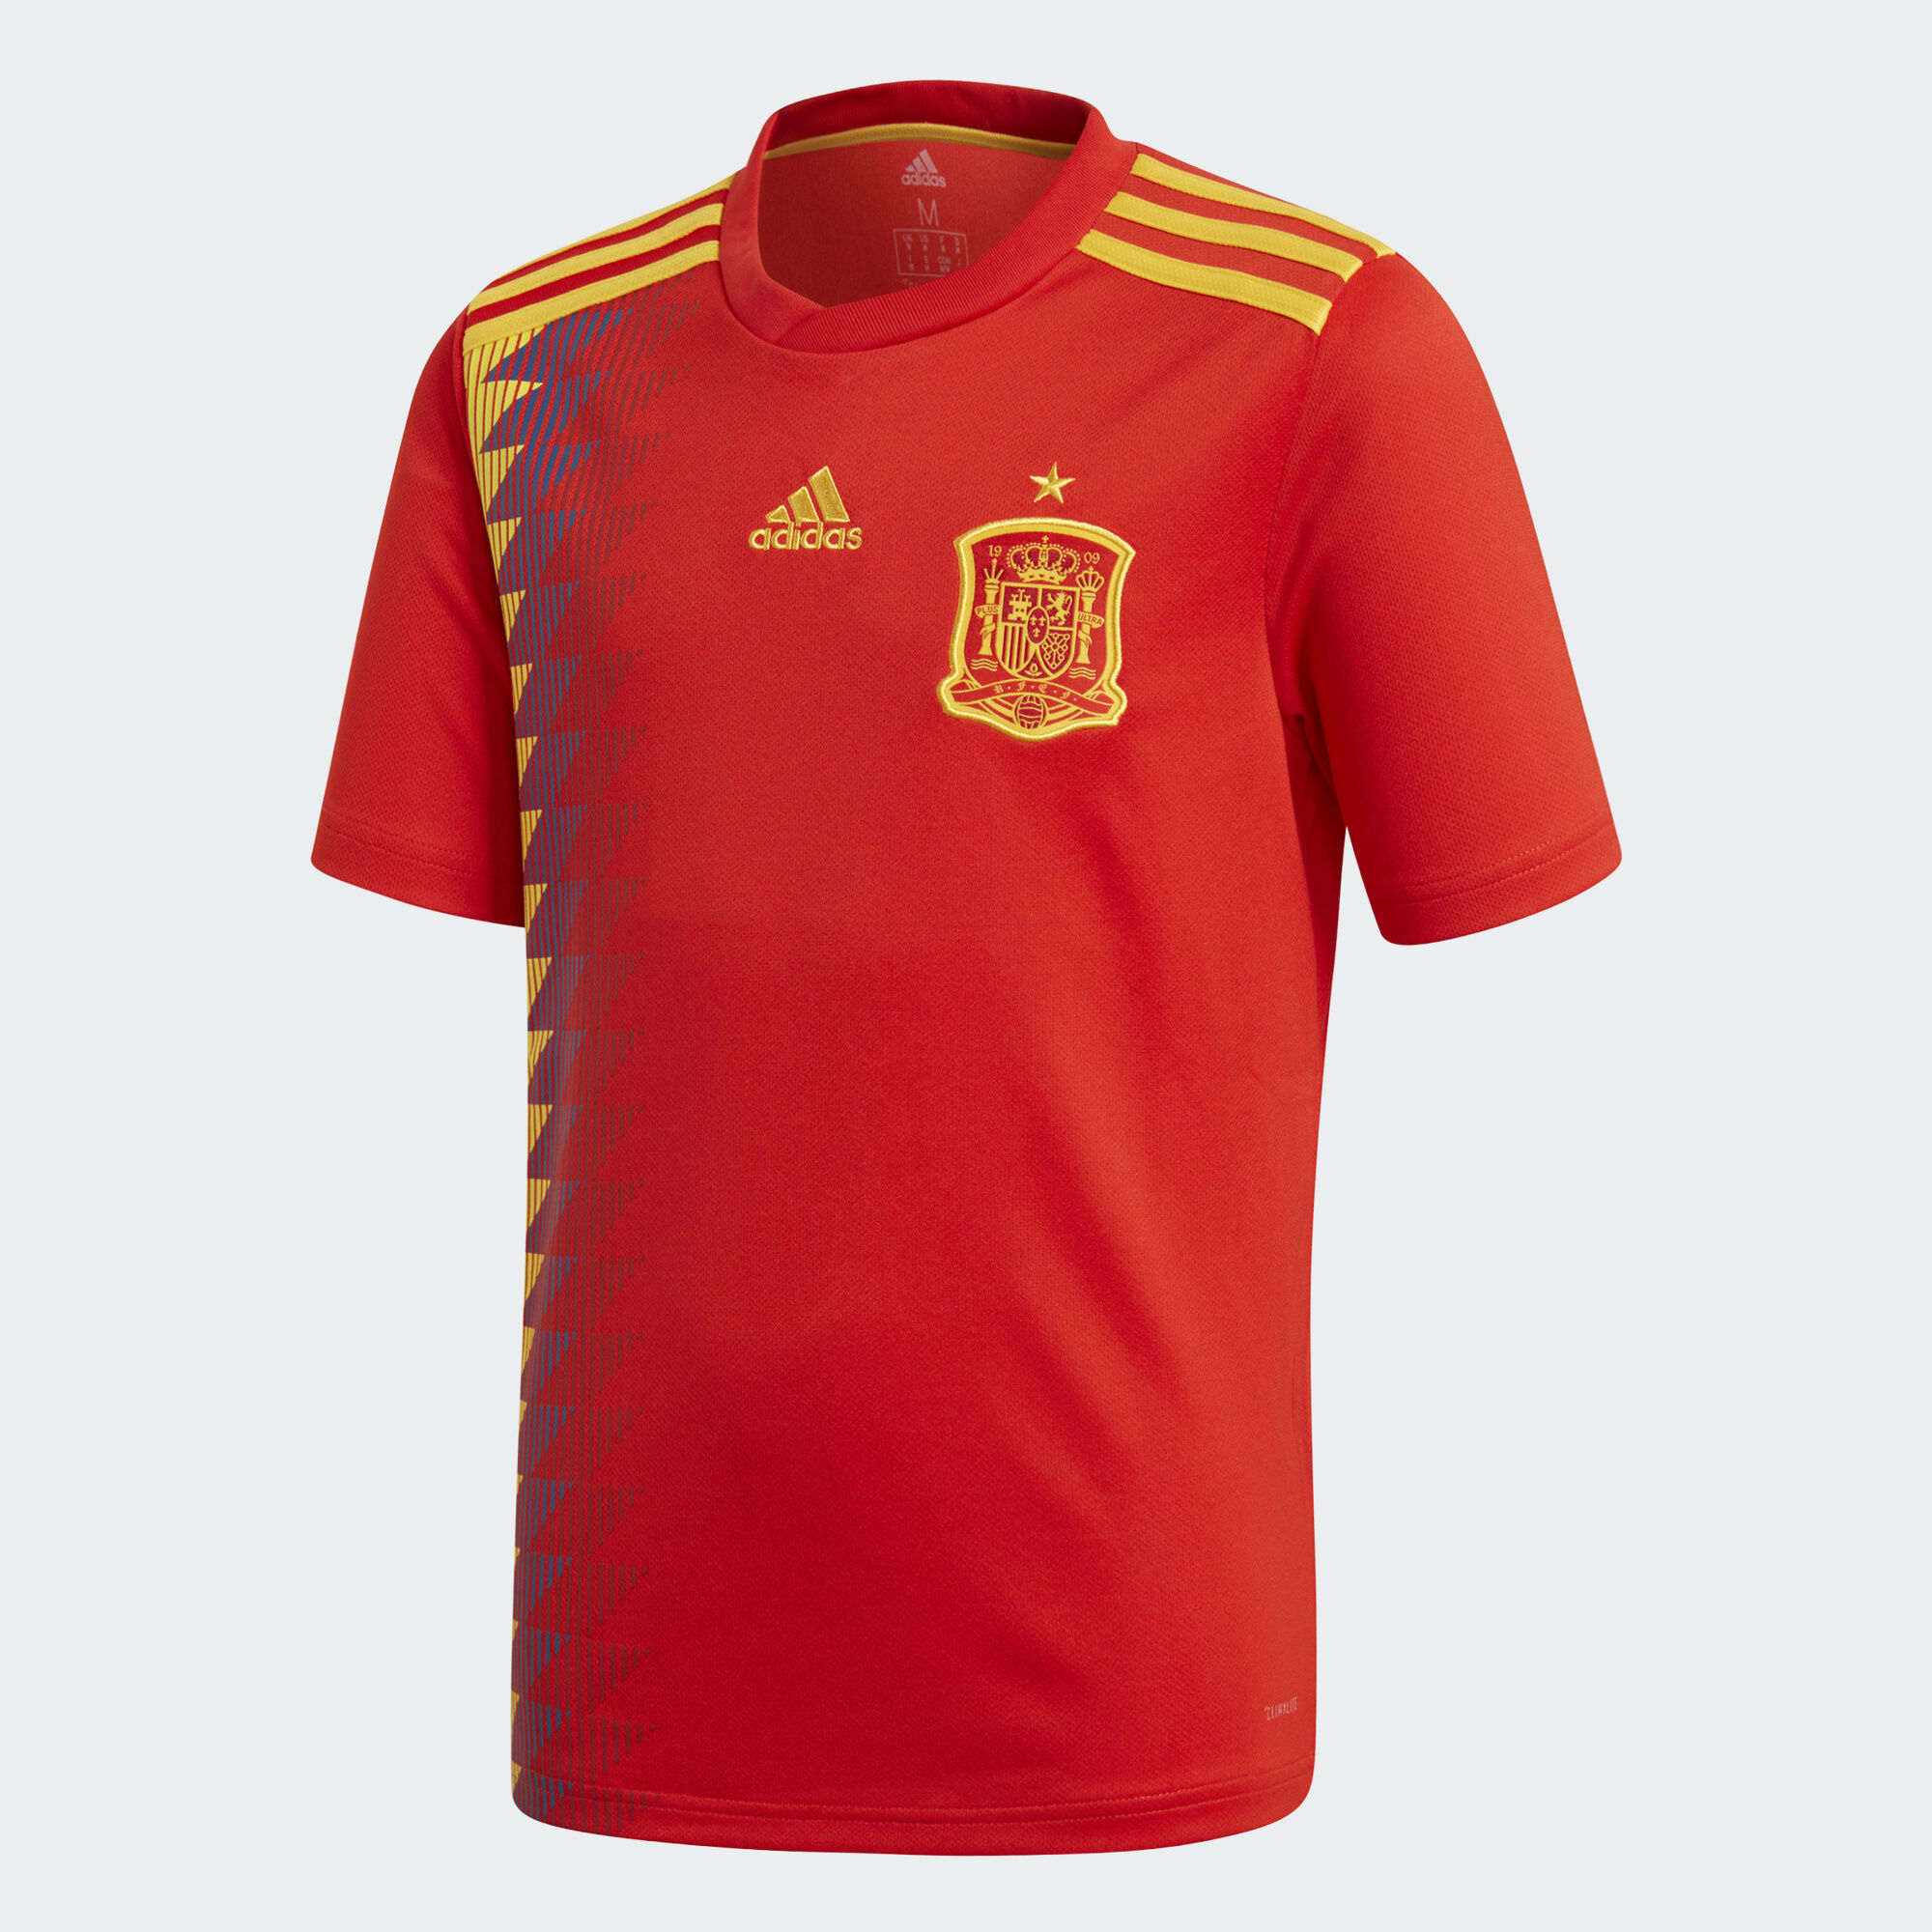 adidas - Spain Home Jersey Red Bold Gold BR2713 a7d080687